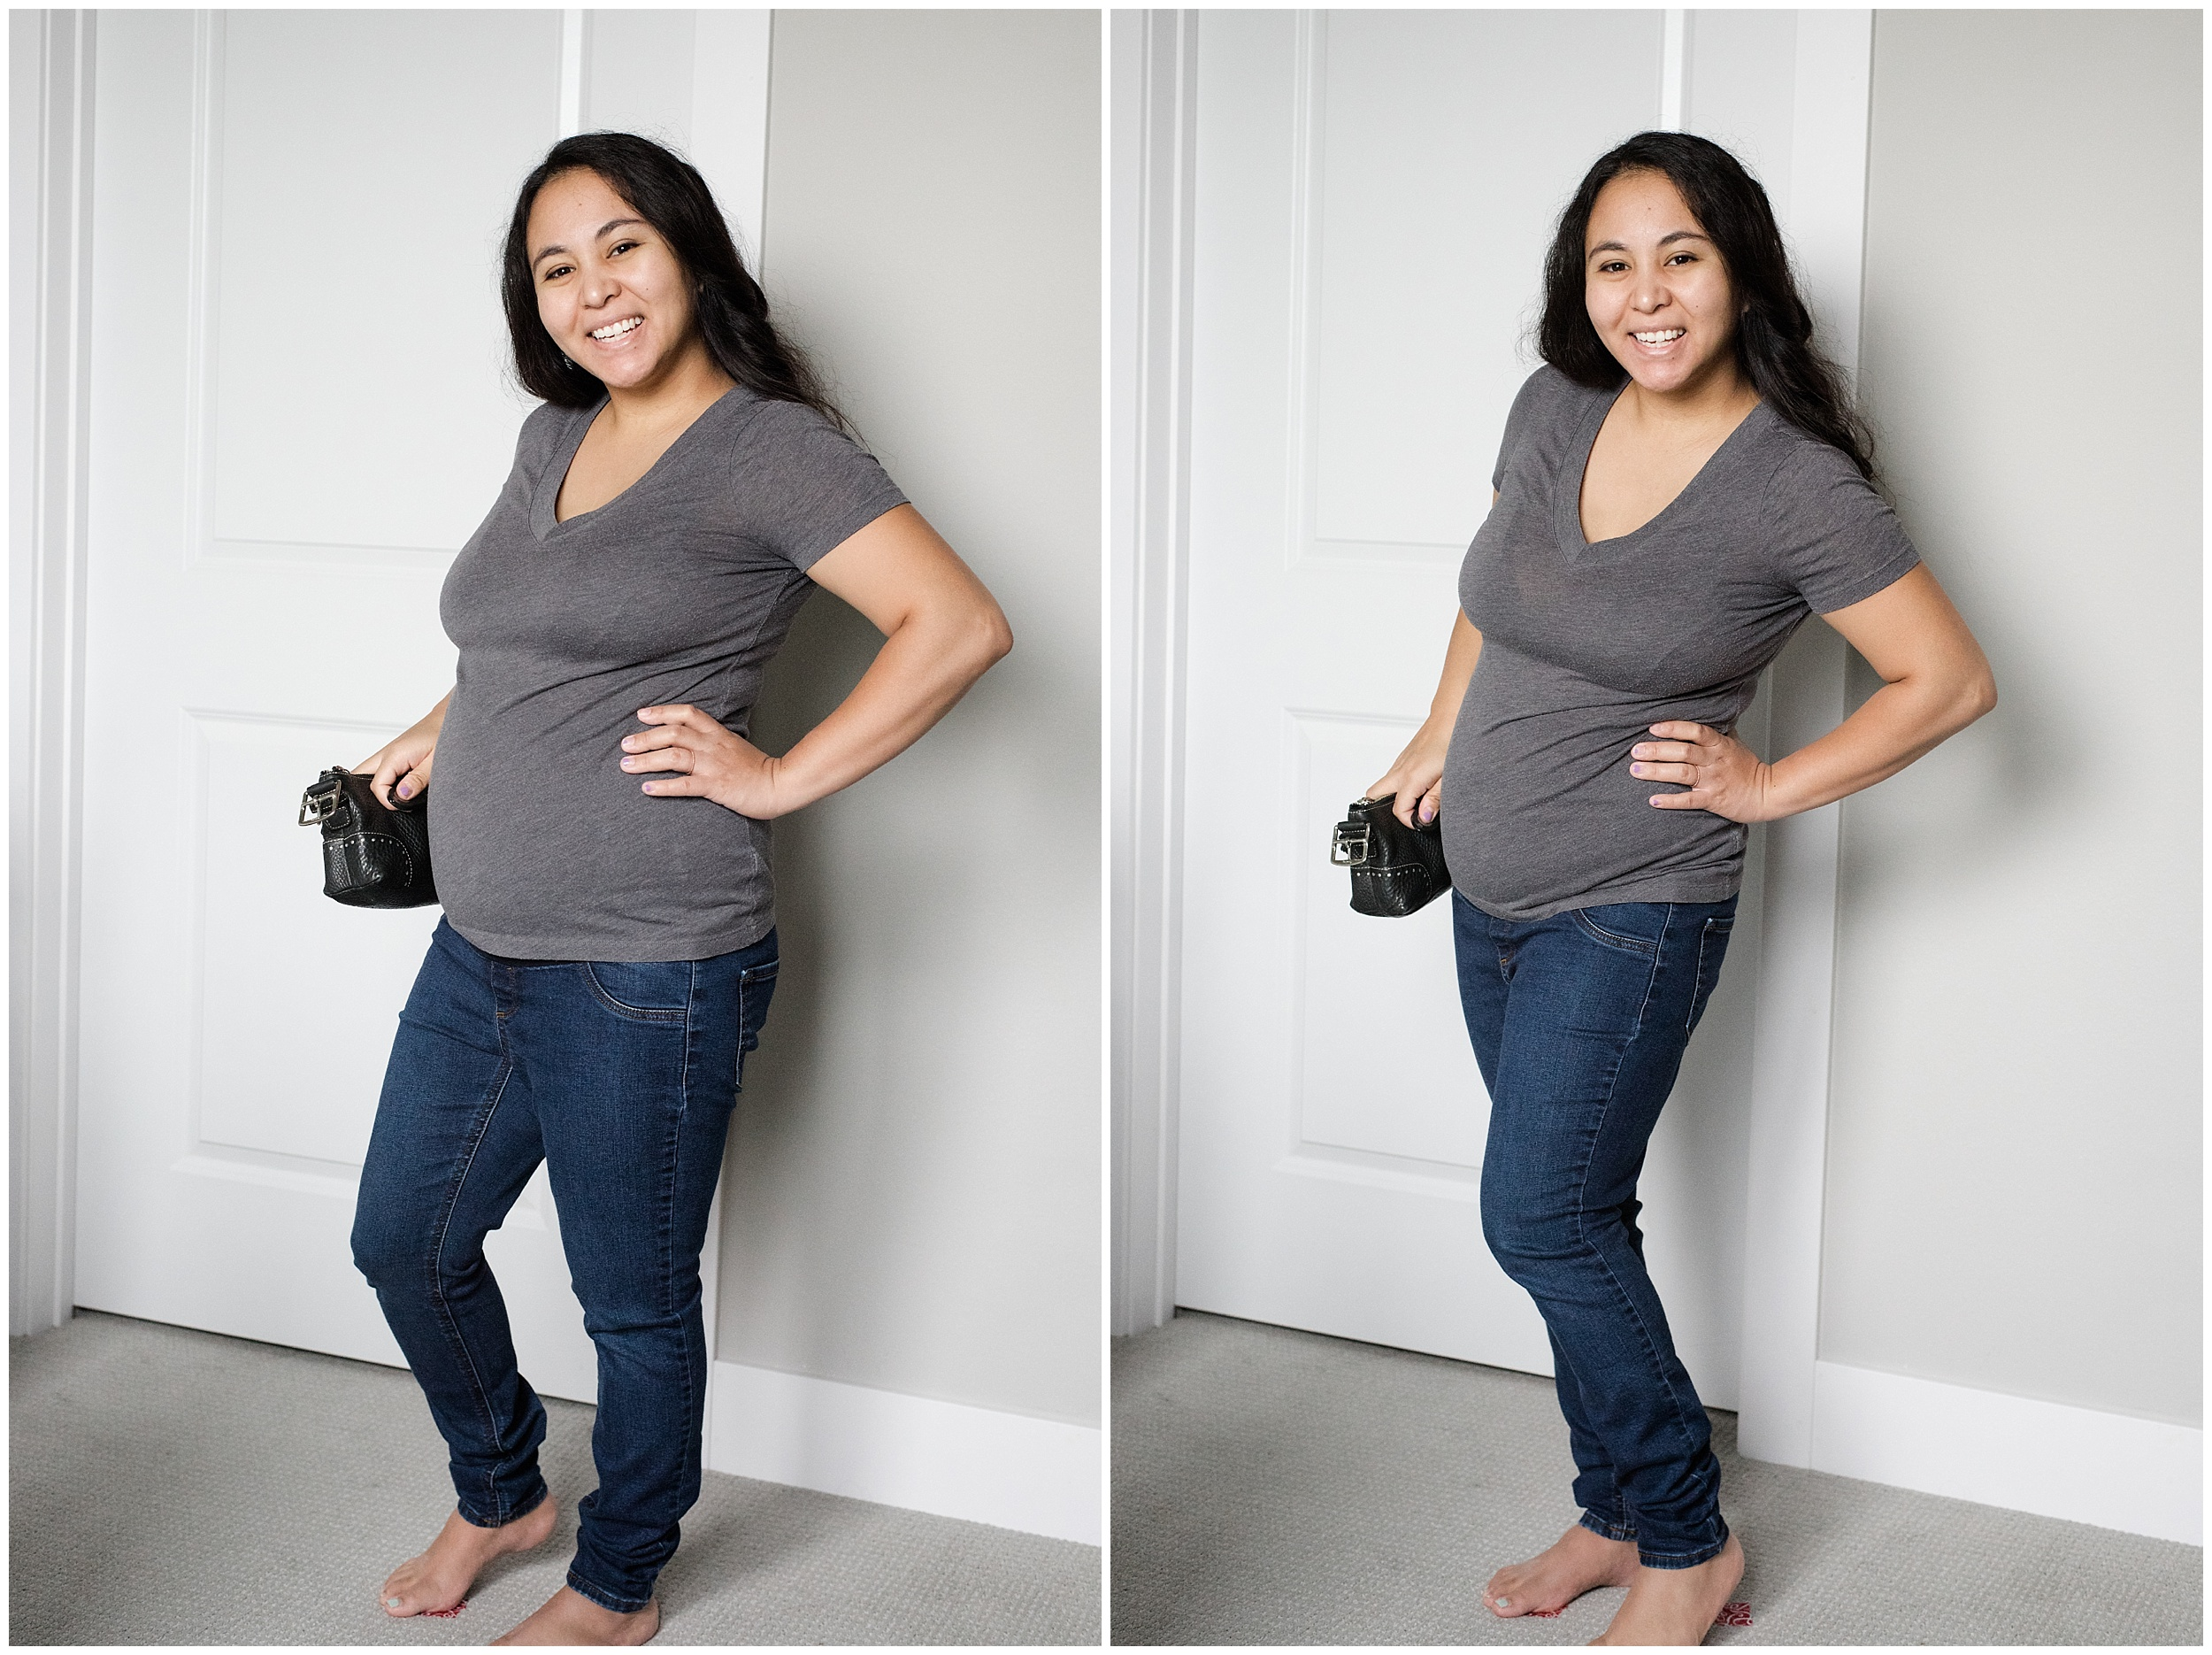 Left photo: My body weight is on my front leg towards the camera. Right photo: My body weight is on my back leg away from the camera.